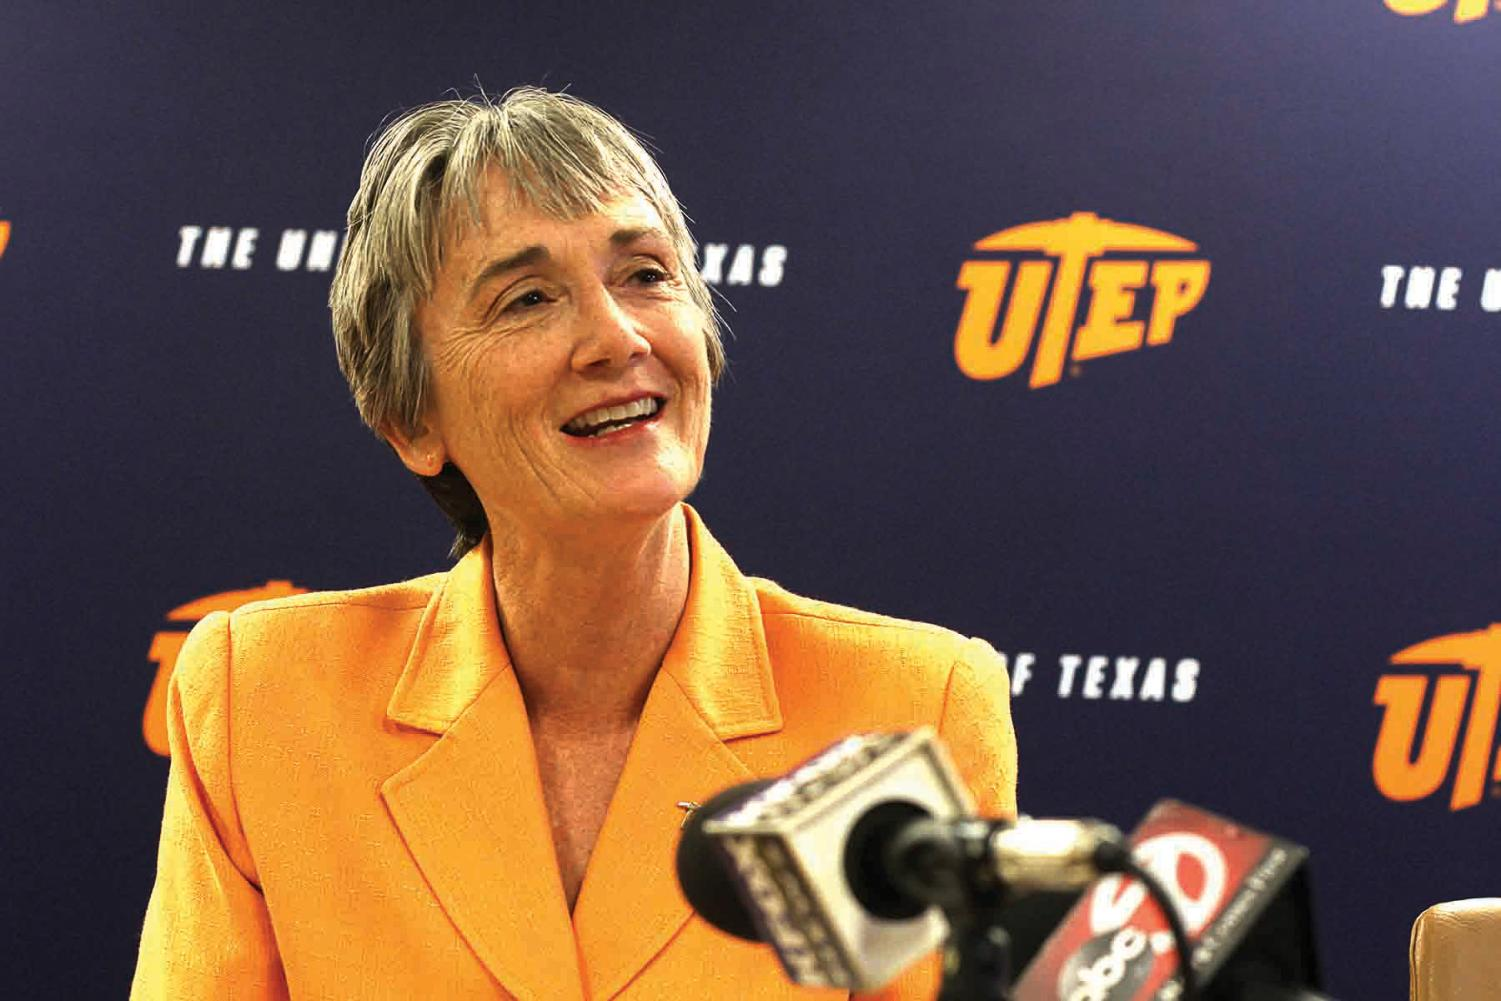 The 11th president in UTEP, Heather Wilson, at Monday's press conference.